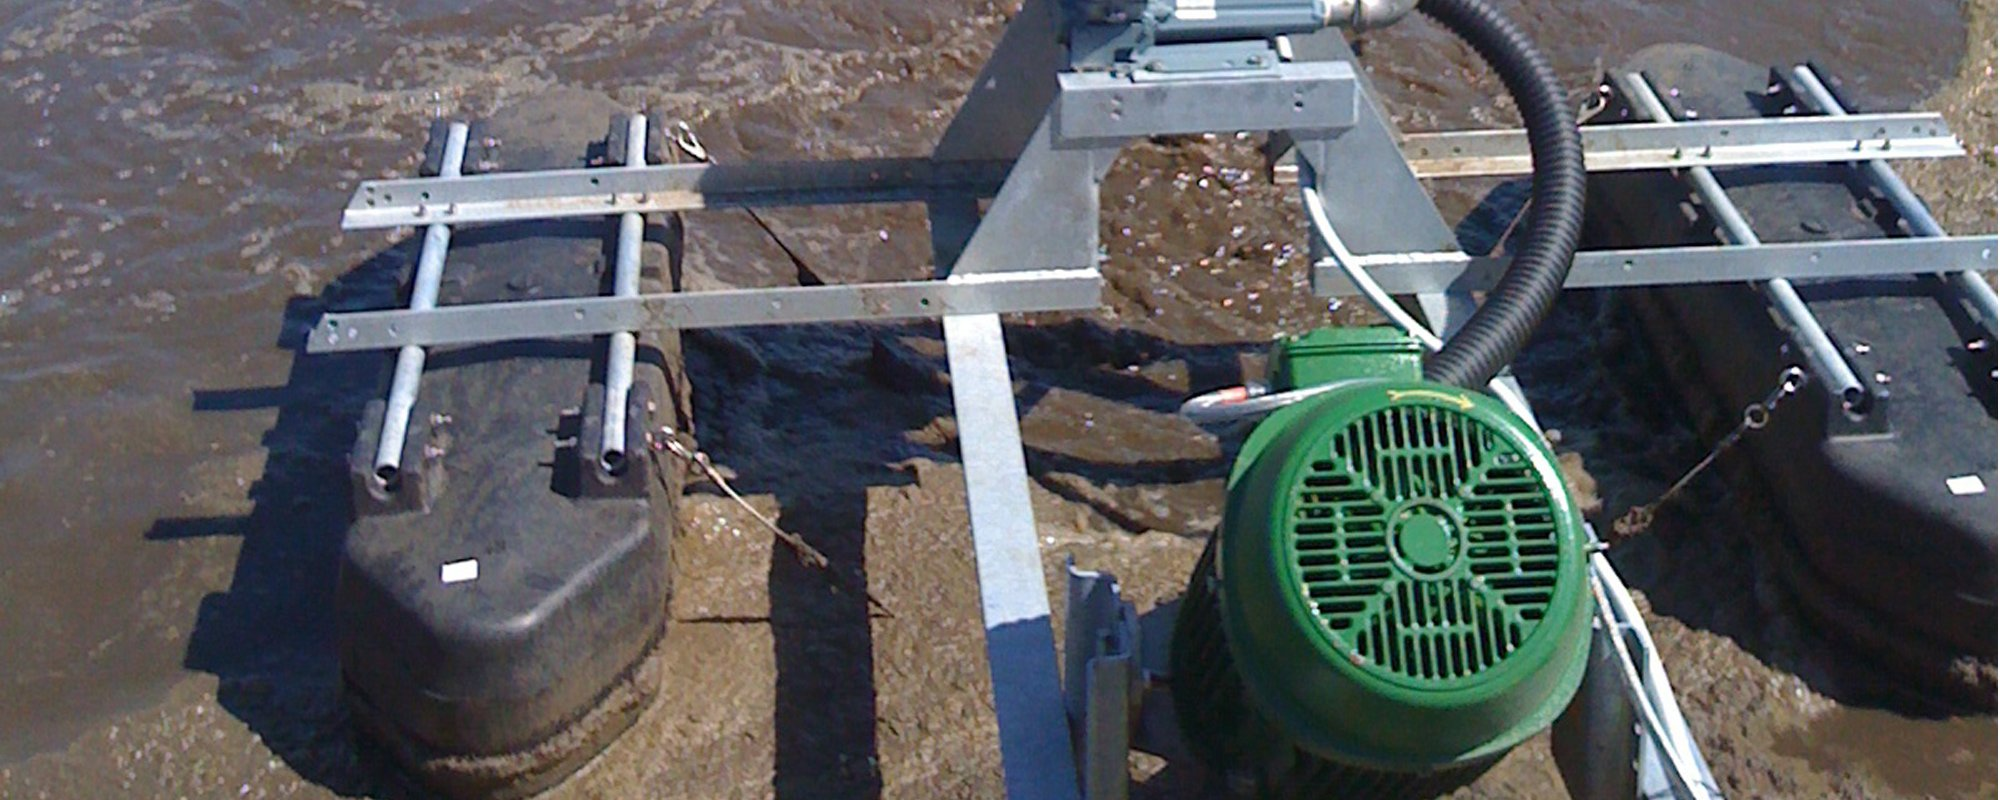 Top view of the pump